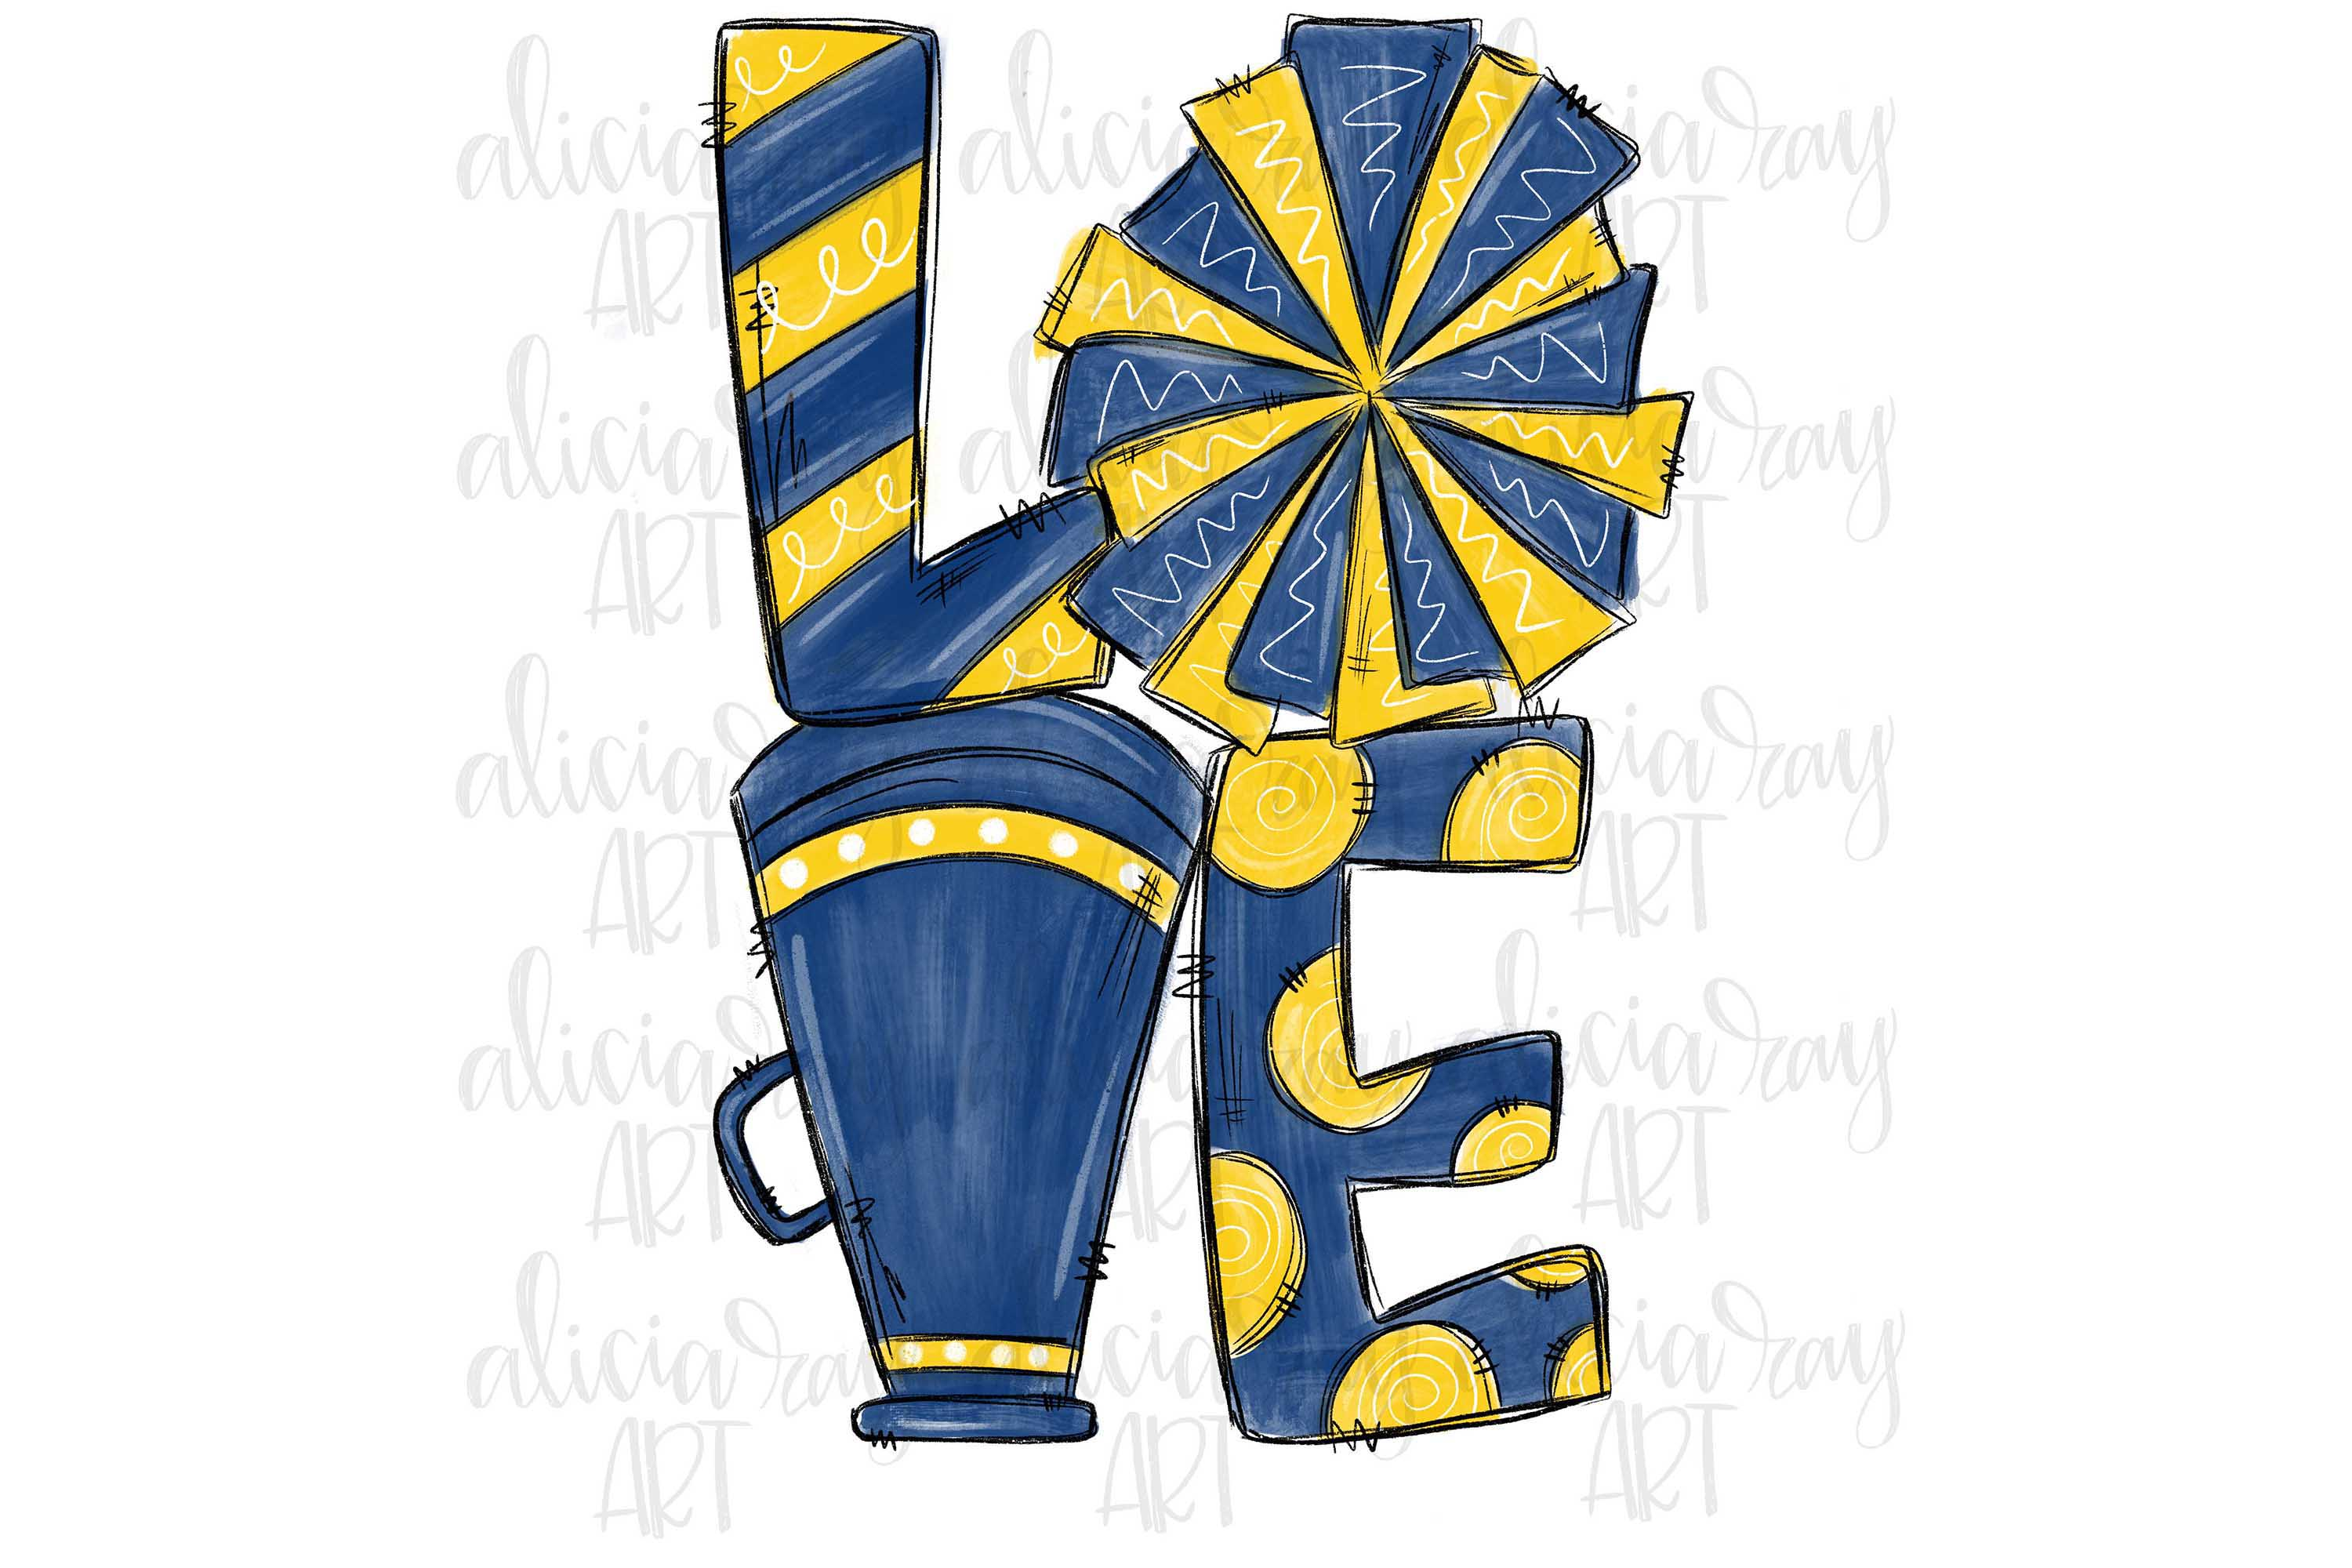 Cheer Love Navy and Yellow/Gold example image 1